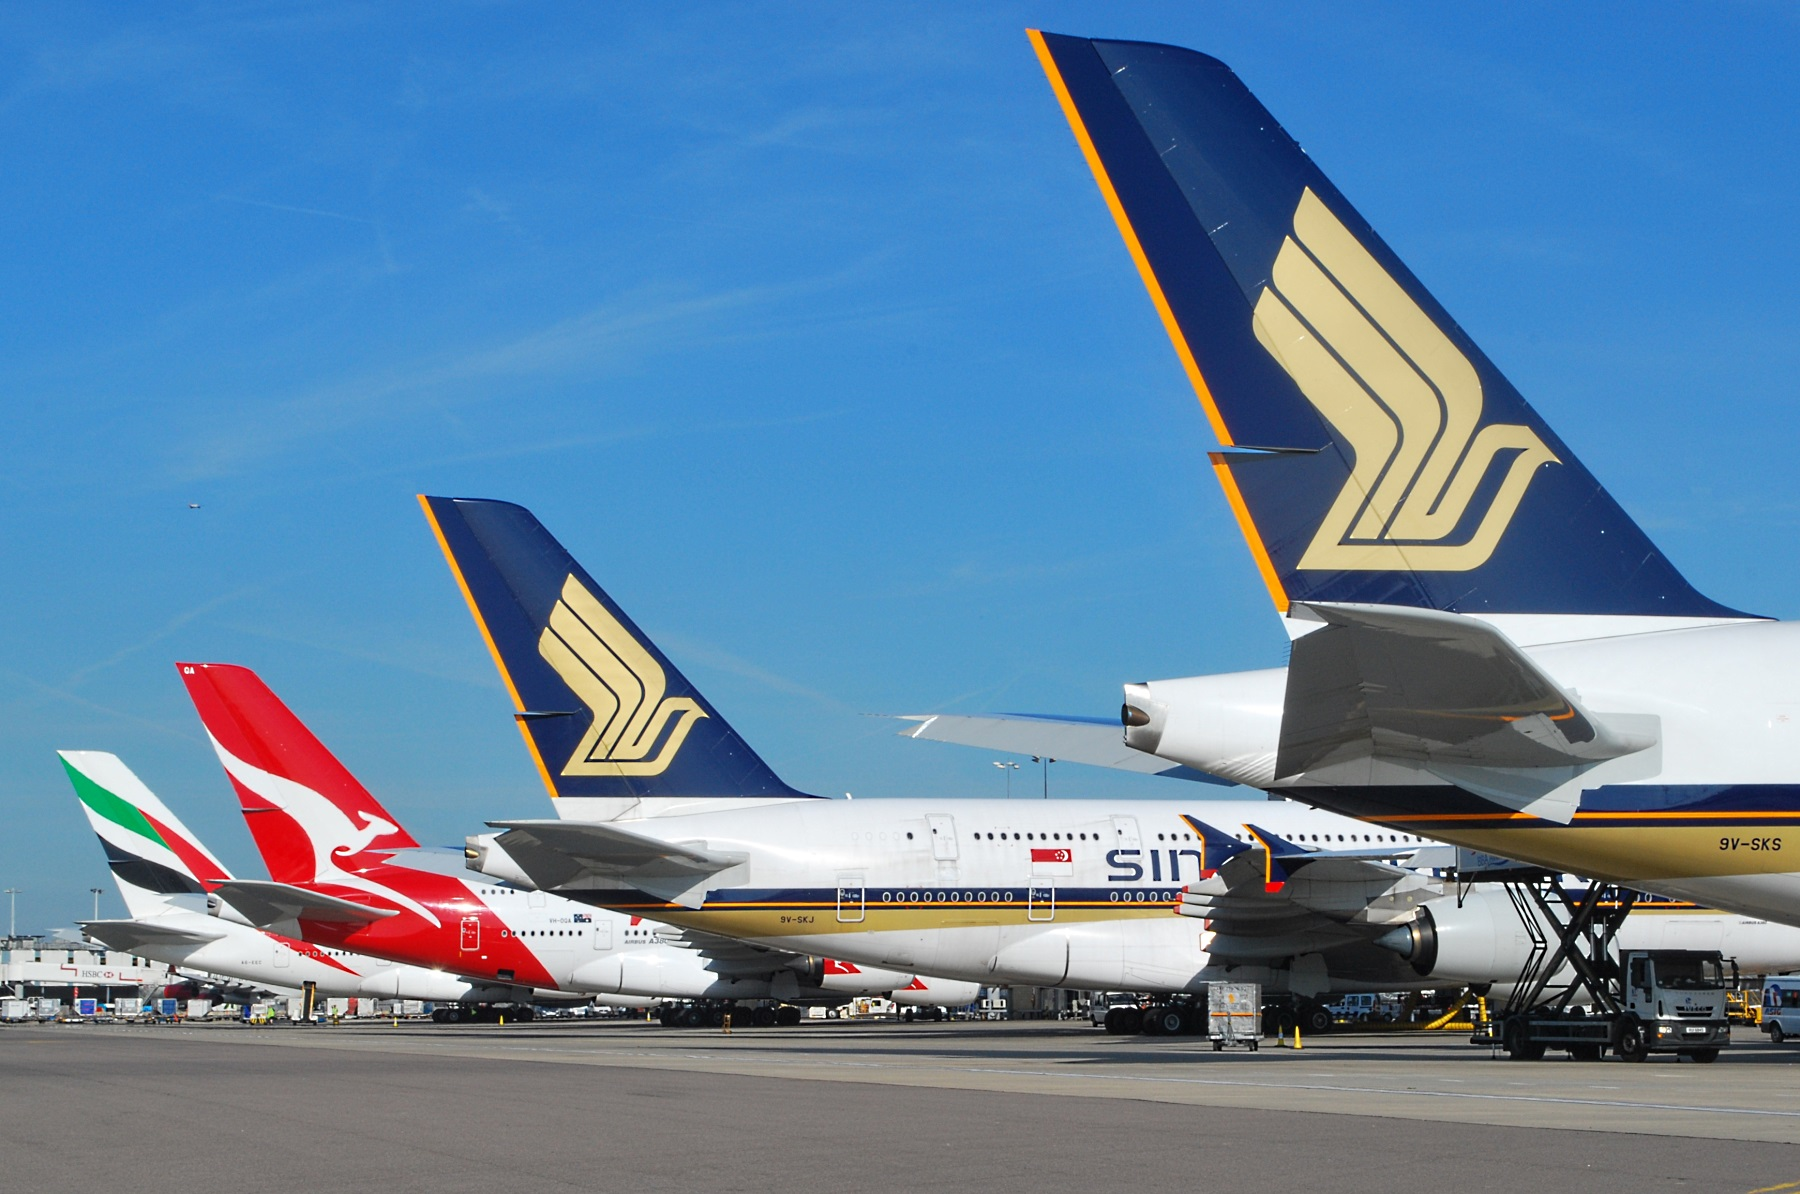 Airlines bringing the A380 superjumbo back in 2021